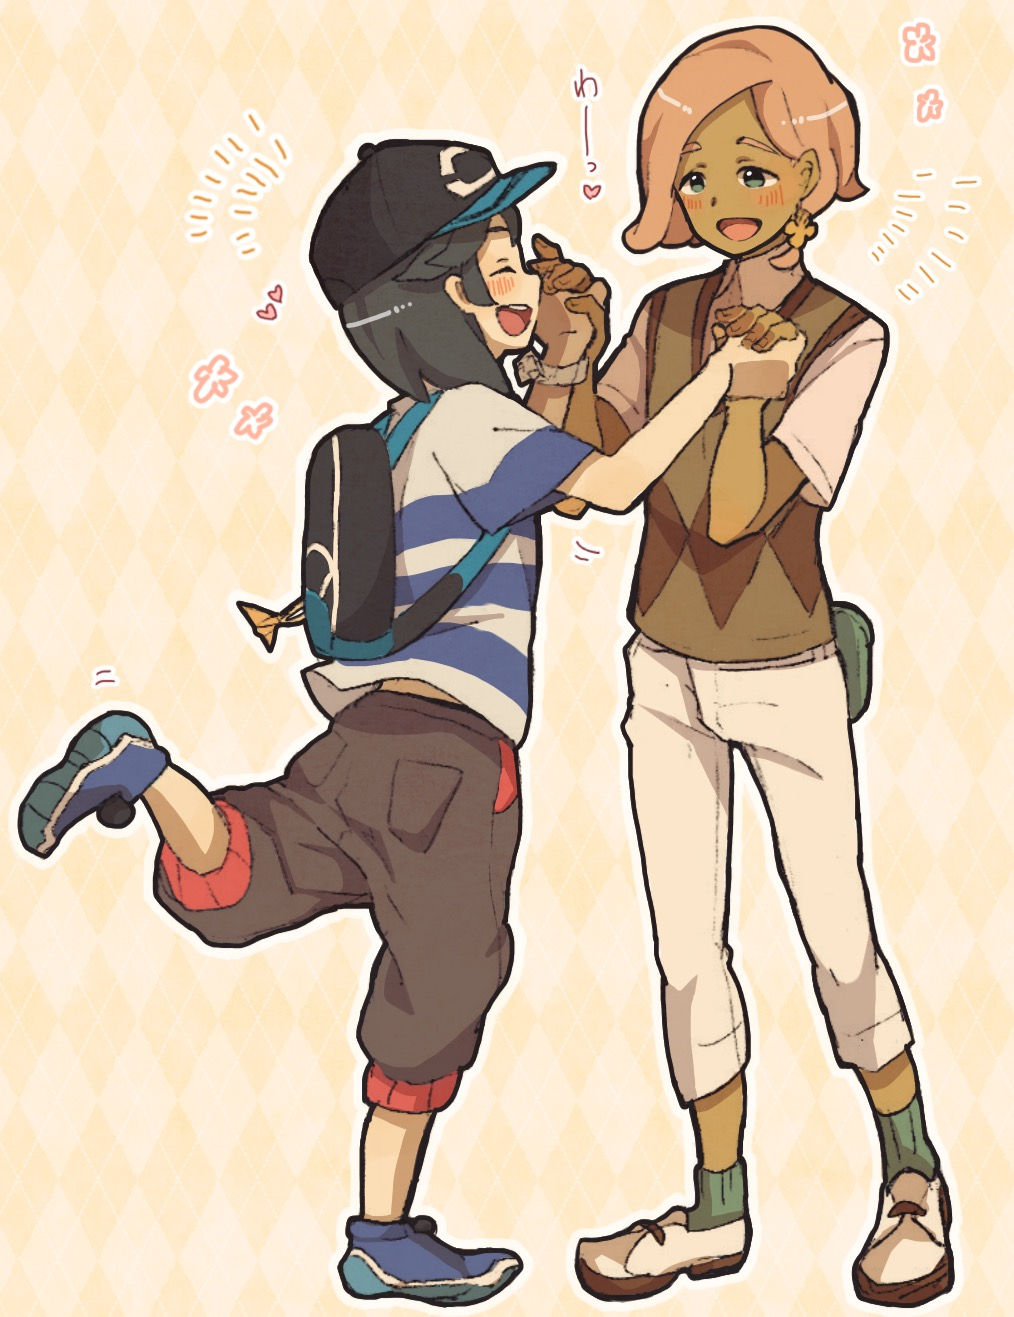 2boys androgynous aoya_(ayoyame18) backpack bag bangs baseball_cap black_hair black_hat blue_eyes capri_pants dark_skin dark_skinned_male hat highres ilima_(pokemon) male_focus multiple_boys open_mouth pants pink_hair pokemon pokemon_(game) pokemon_sm shirt short_hair smile striped striped_shirt sweater_vest swept_bangs t-shirt you_(pokemon_sm) z-ring